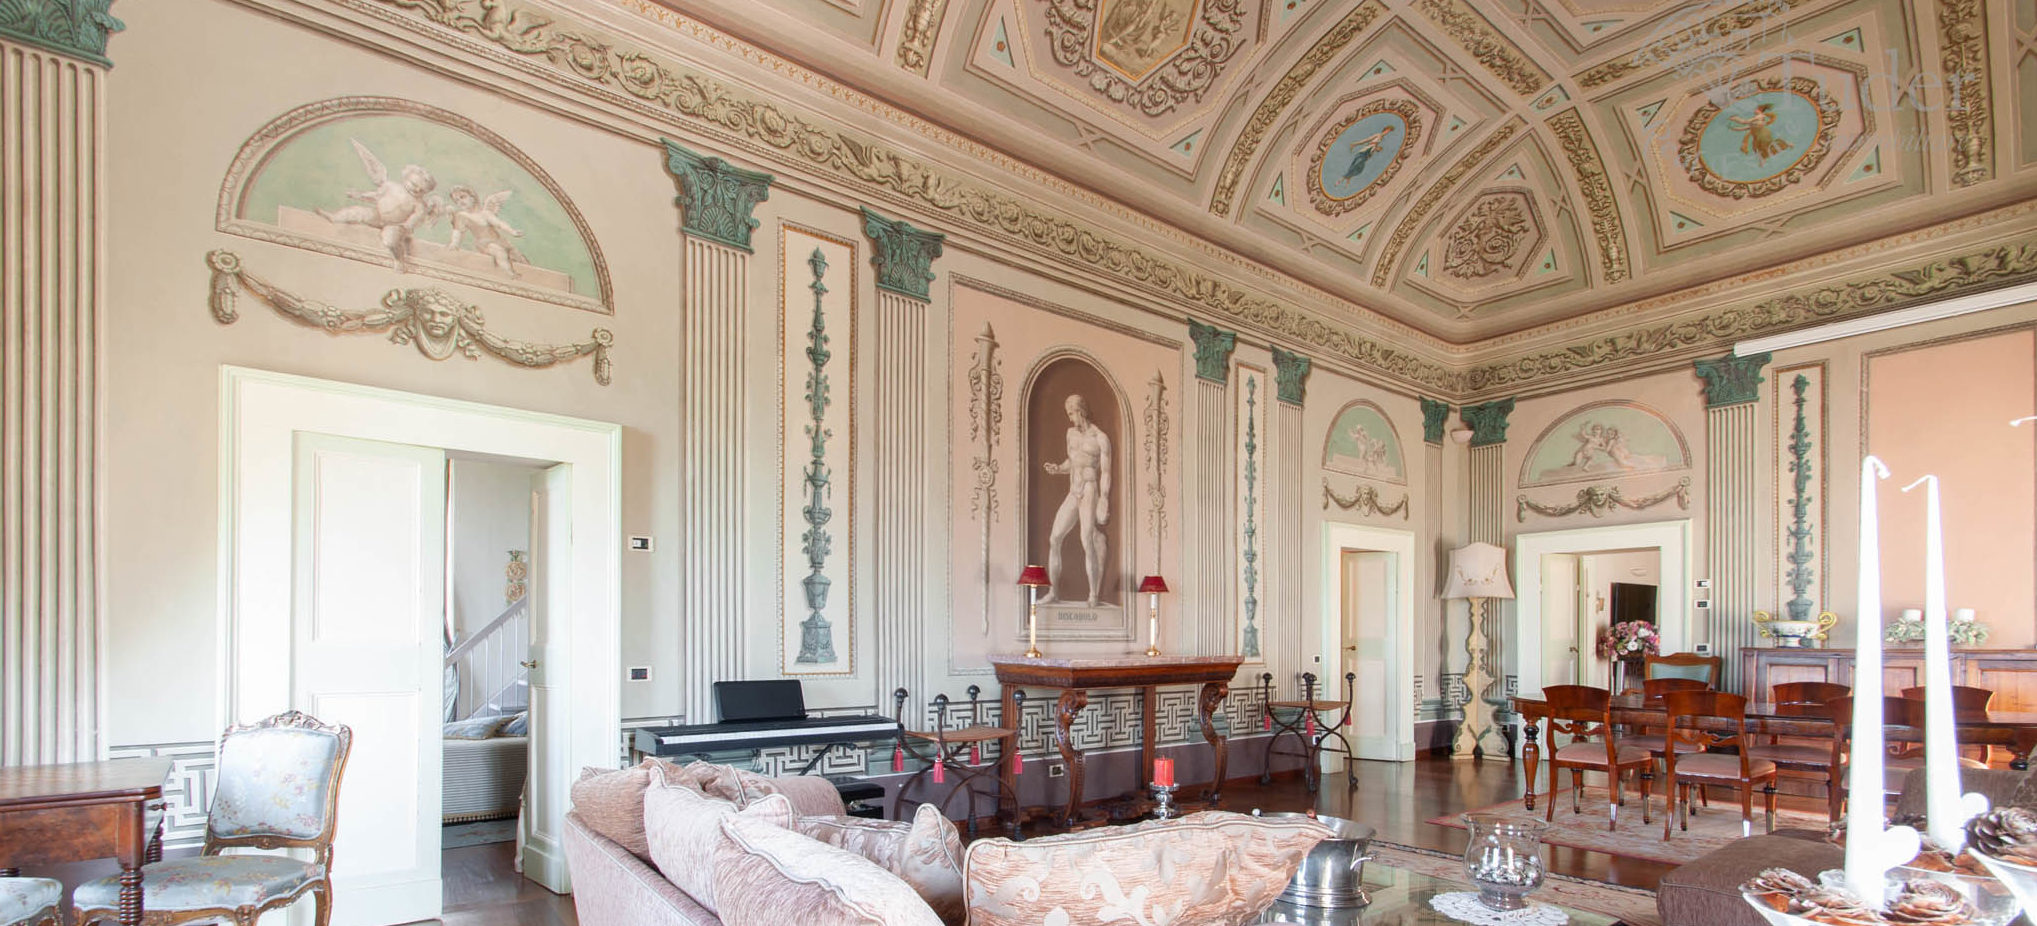 572 – Apartment in the historic centre of Assisi